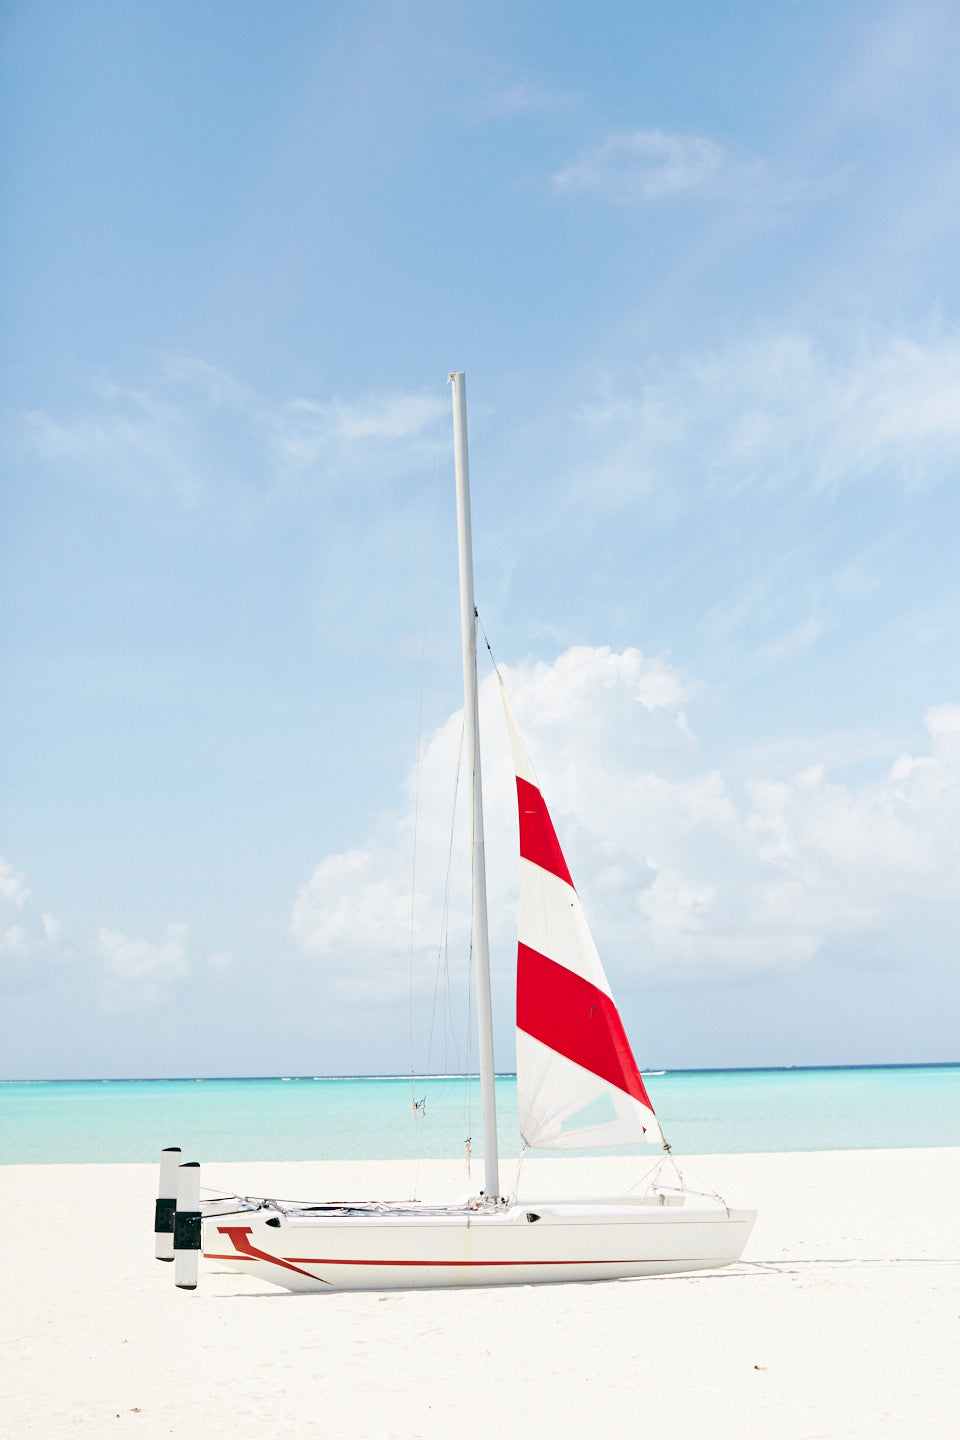 Red Striped sail with Catamaran, Cocoa Island, Maldives